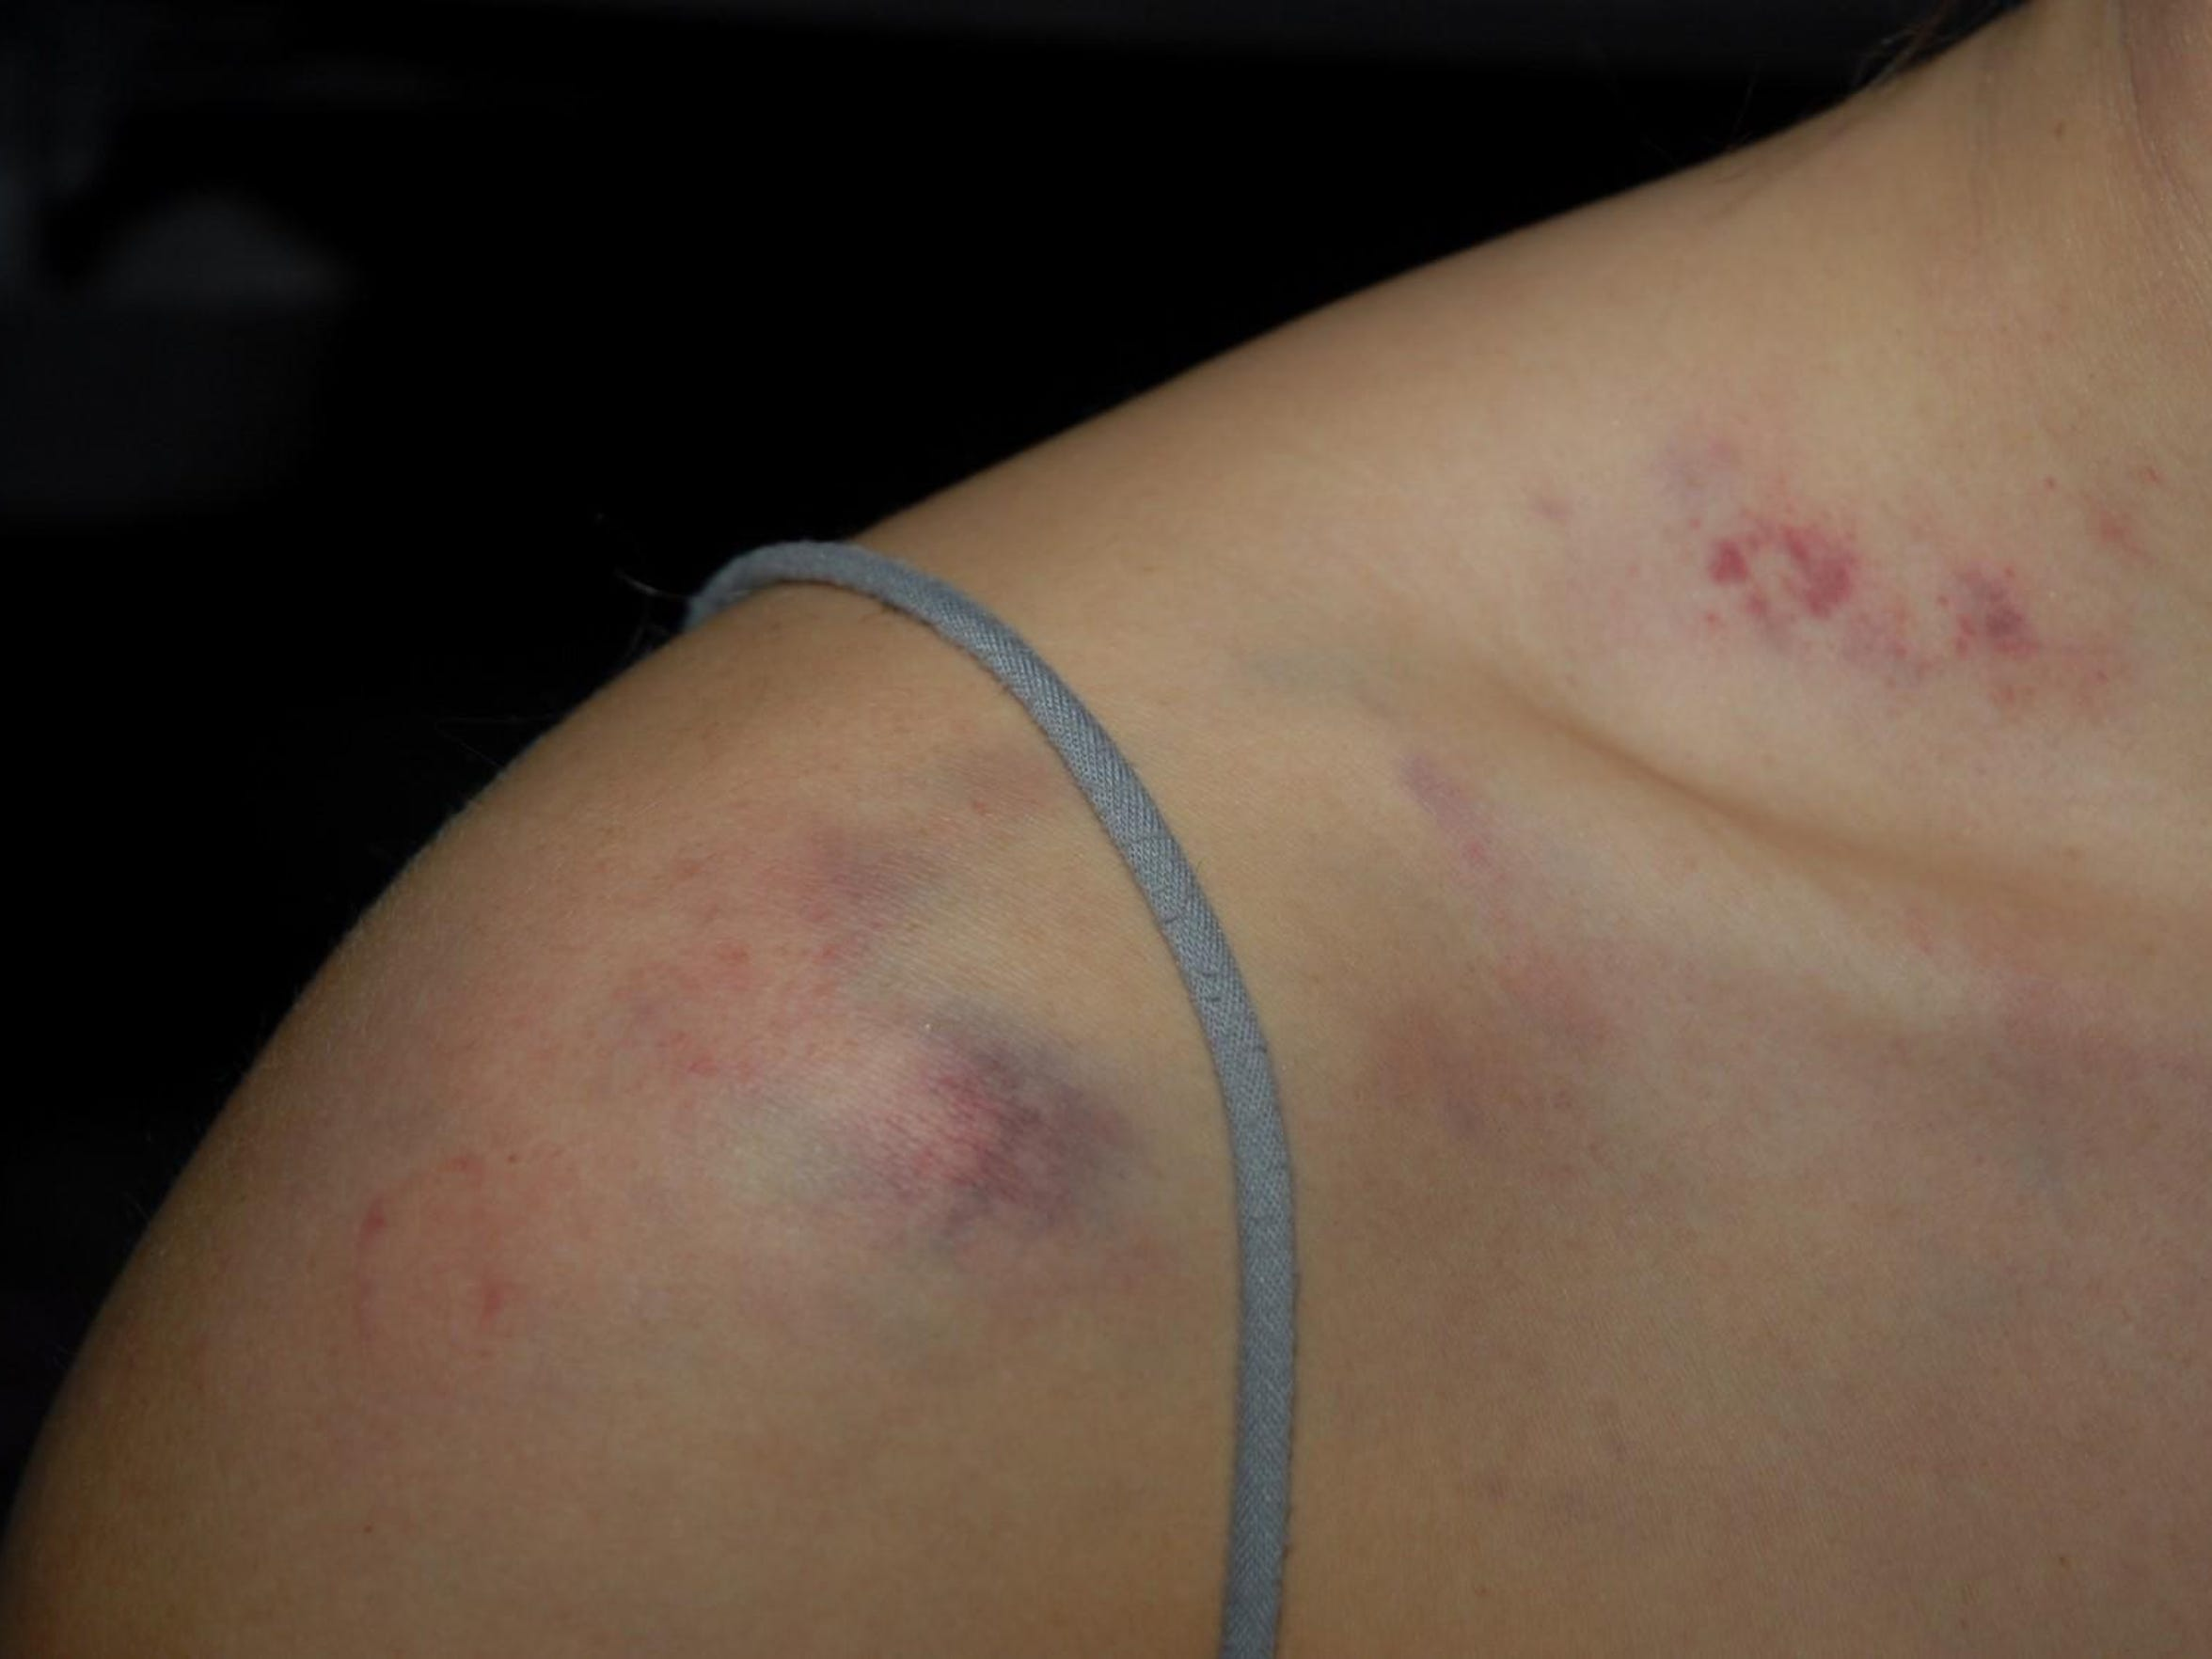 The bruises that began to appear on Tiffany Allison's shoulder after her then-boyfriend beat her in September 2009.